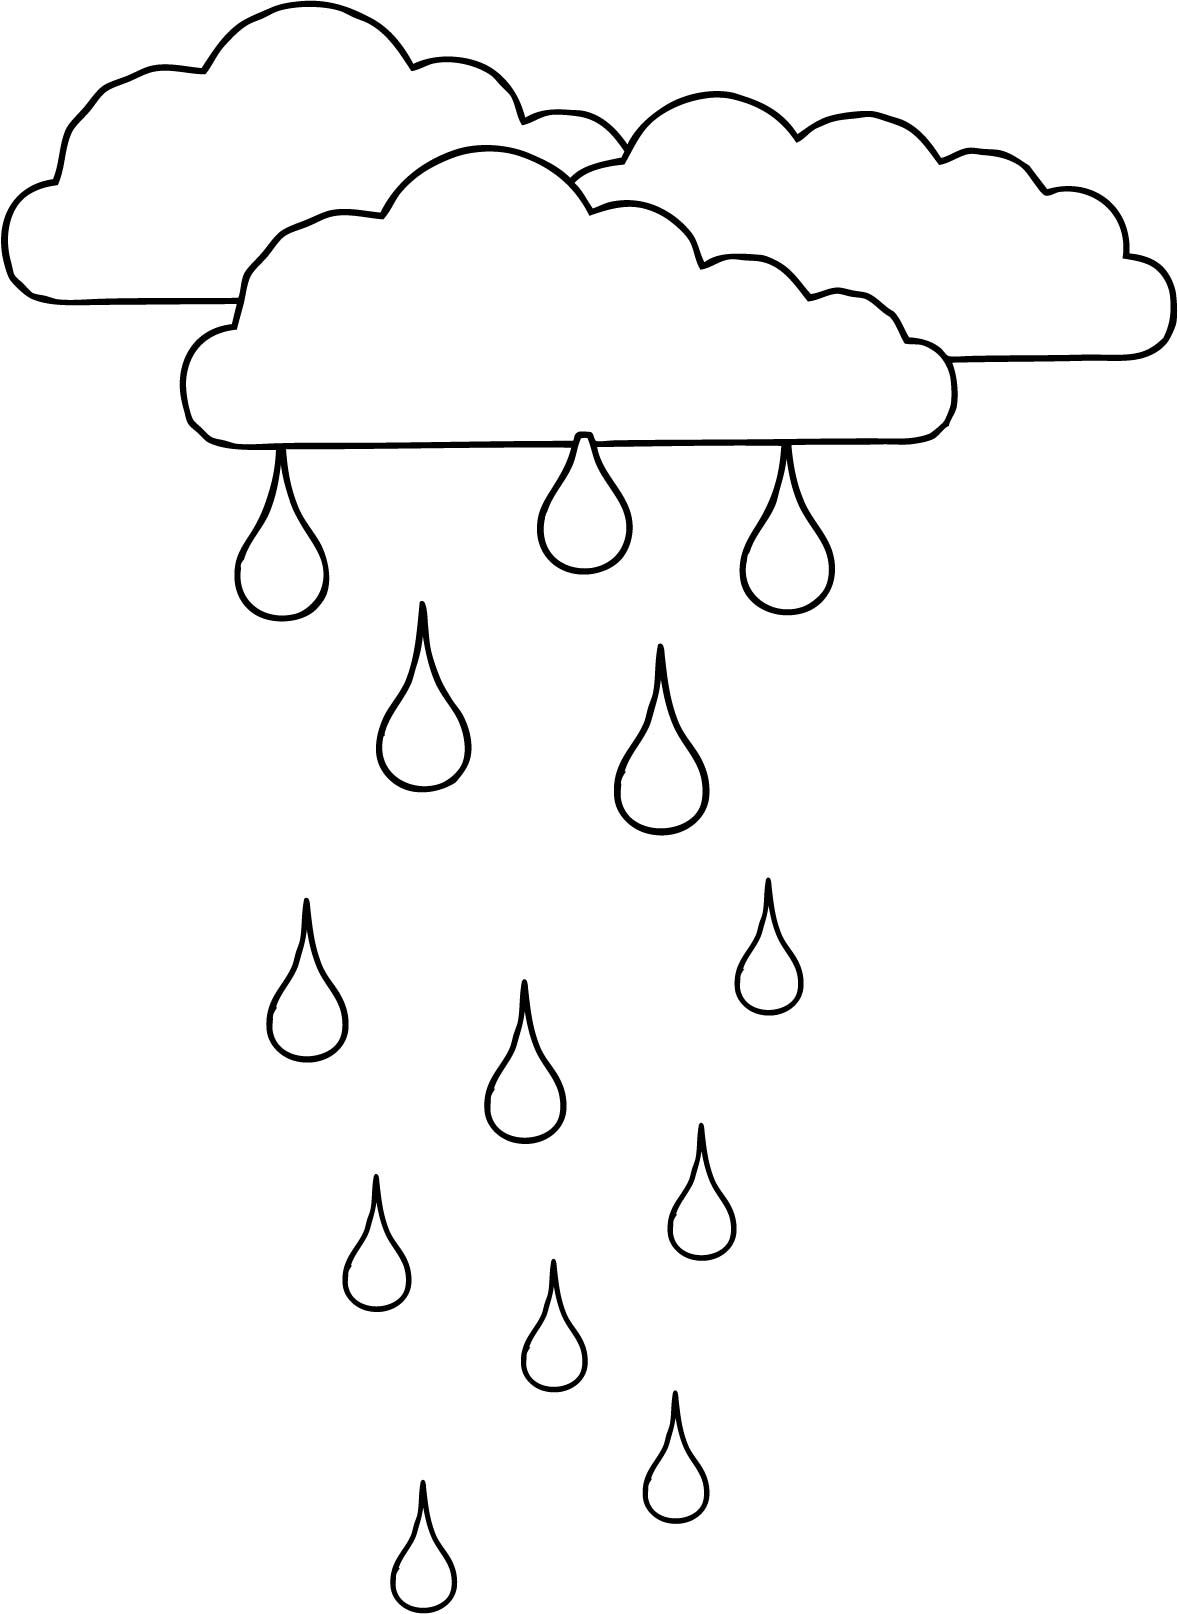 Rain Cloud Coloring Page At Getdrawings